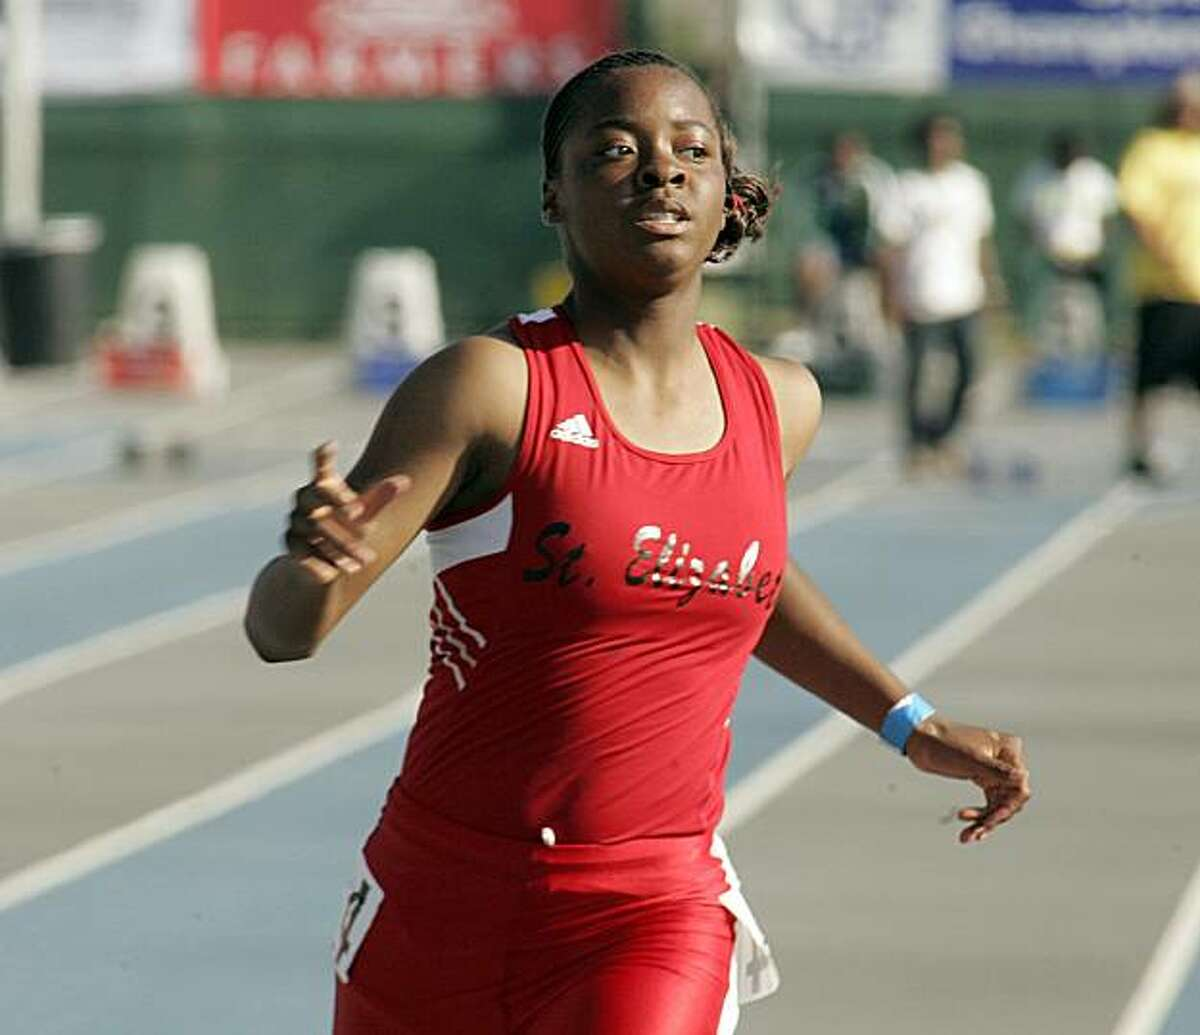 Ashton Purvis of St. Elizabeth takes 1st place in the Girls 100 meter dash at the CIF Track and Field Championships Saturday in Norwalk.